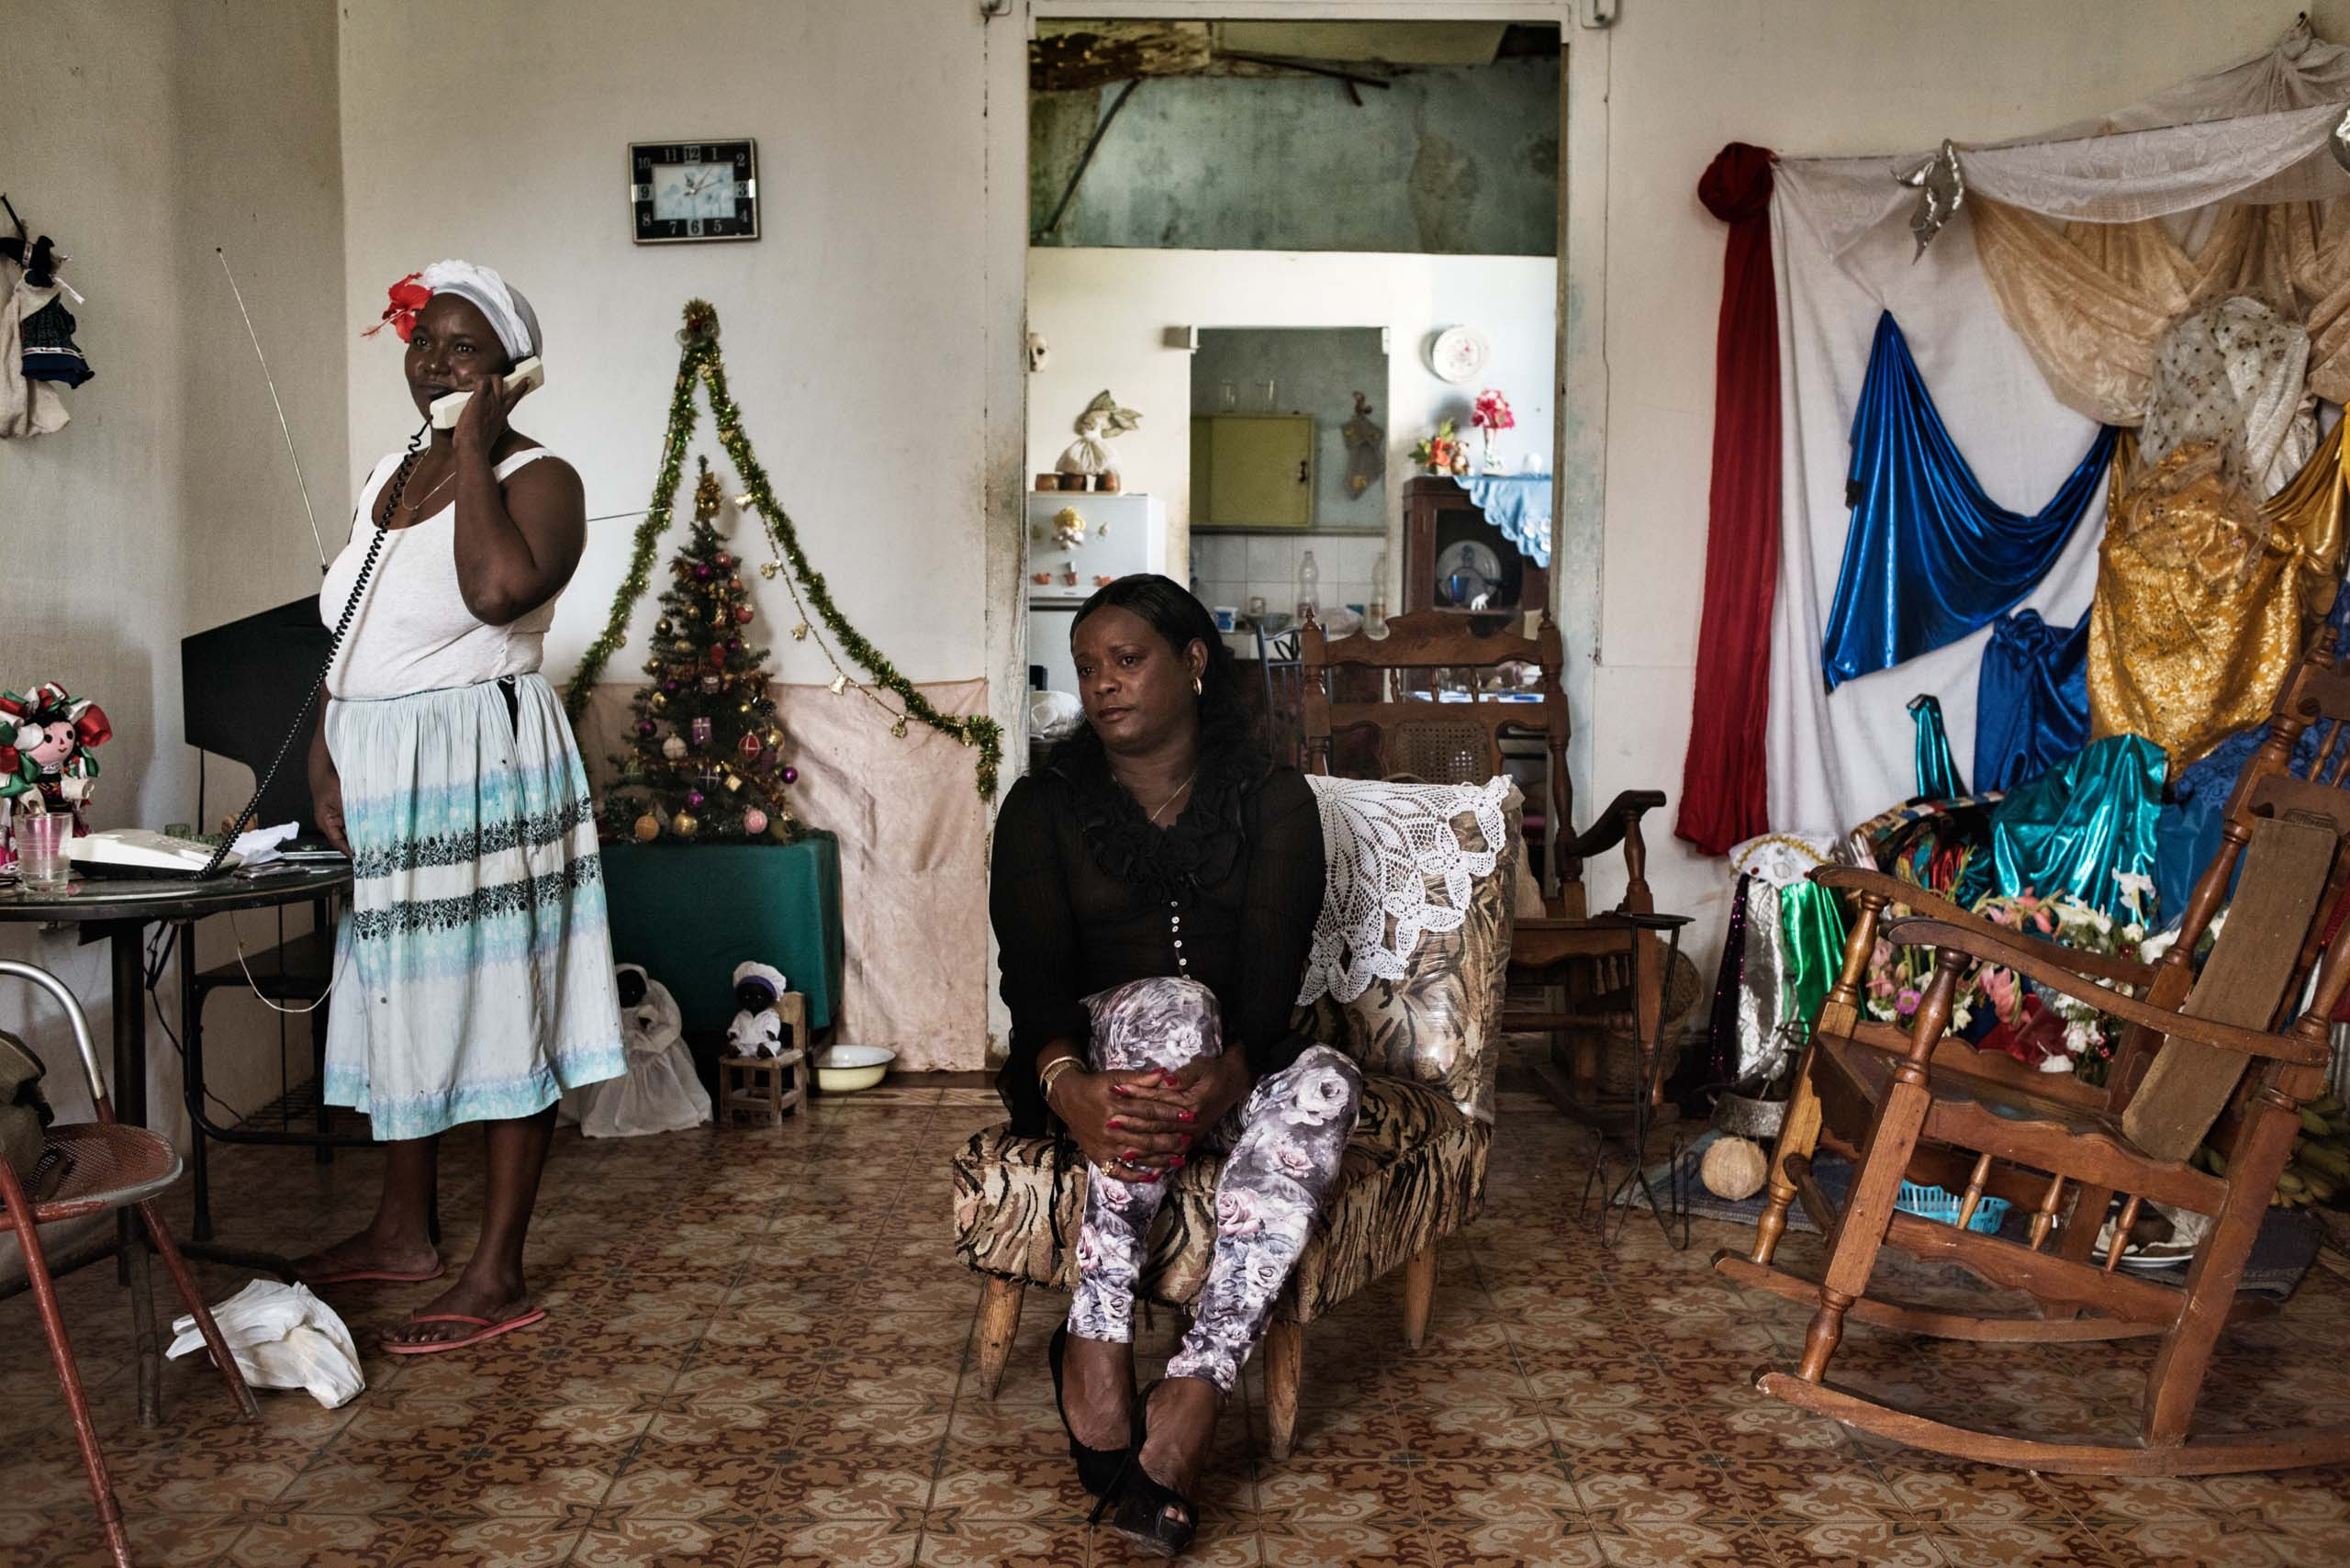 December 2014. Naomi, age 40, has lived as a female since she was 17 in Havana. Members of the LGBT community are often marginalized in Cuba. Today, Mariela Castro, daughter of President Raoul Castro, is a prominent LGBT activist and a hero to many in the community.